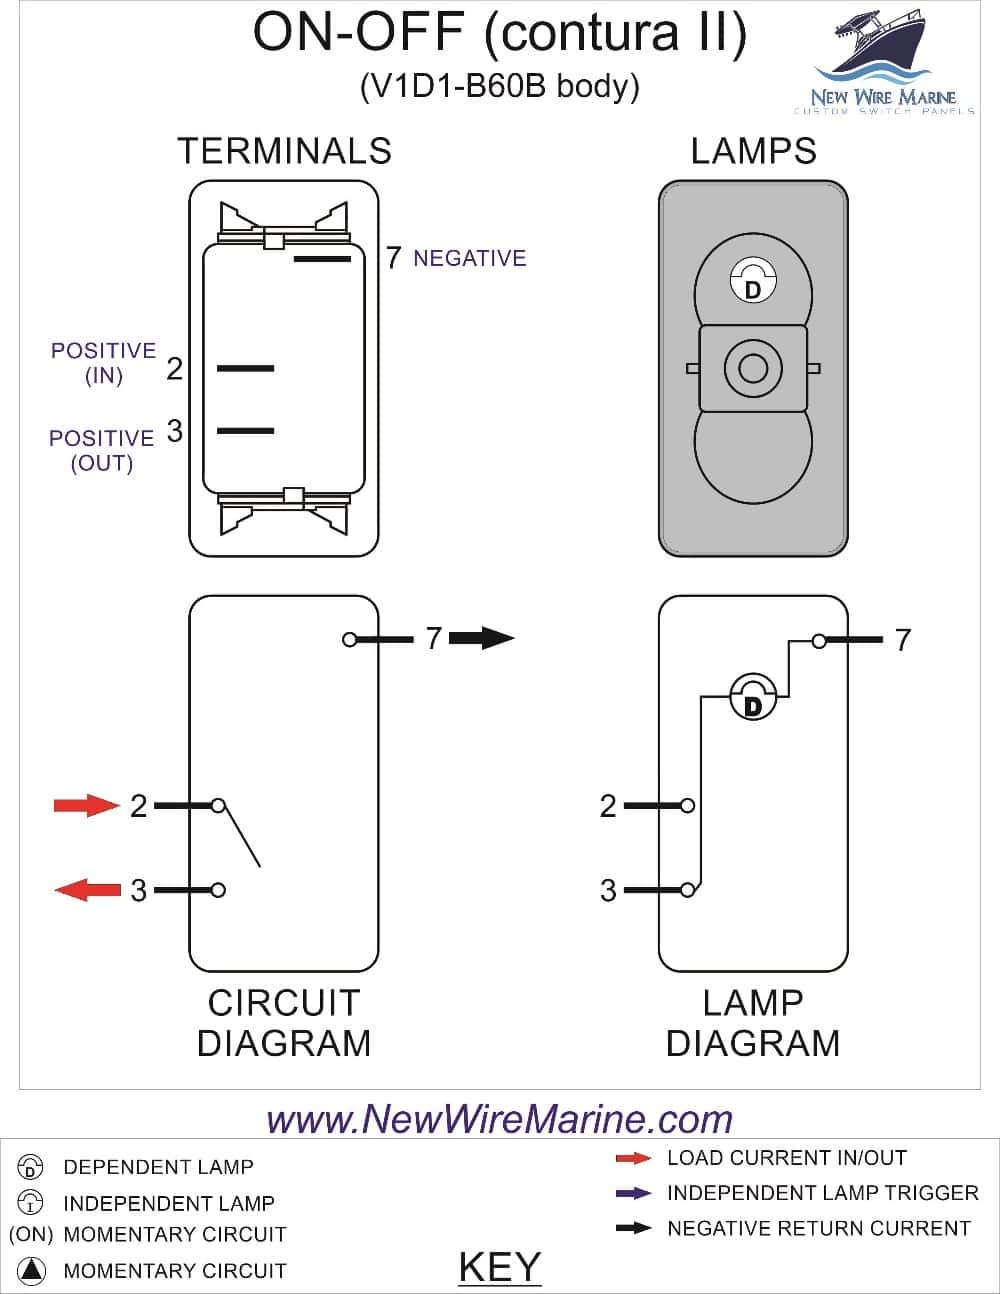 carling toggle switch wiring diagram Collection-Carling Toggle Switch Wiring Diagram Fitfathers Me Beautiful 4-g